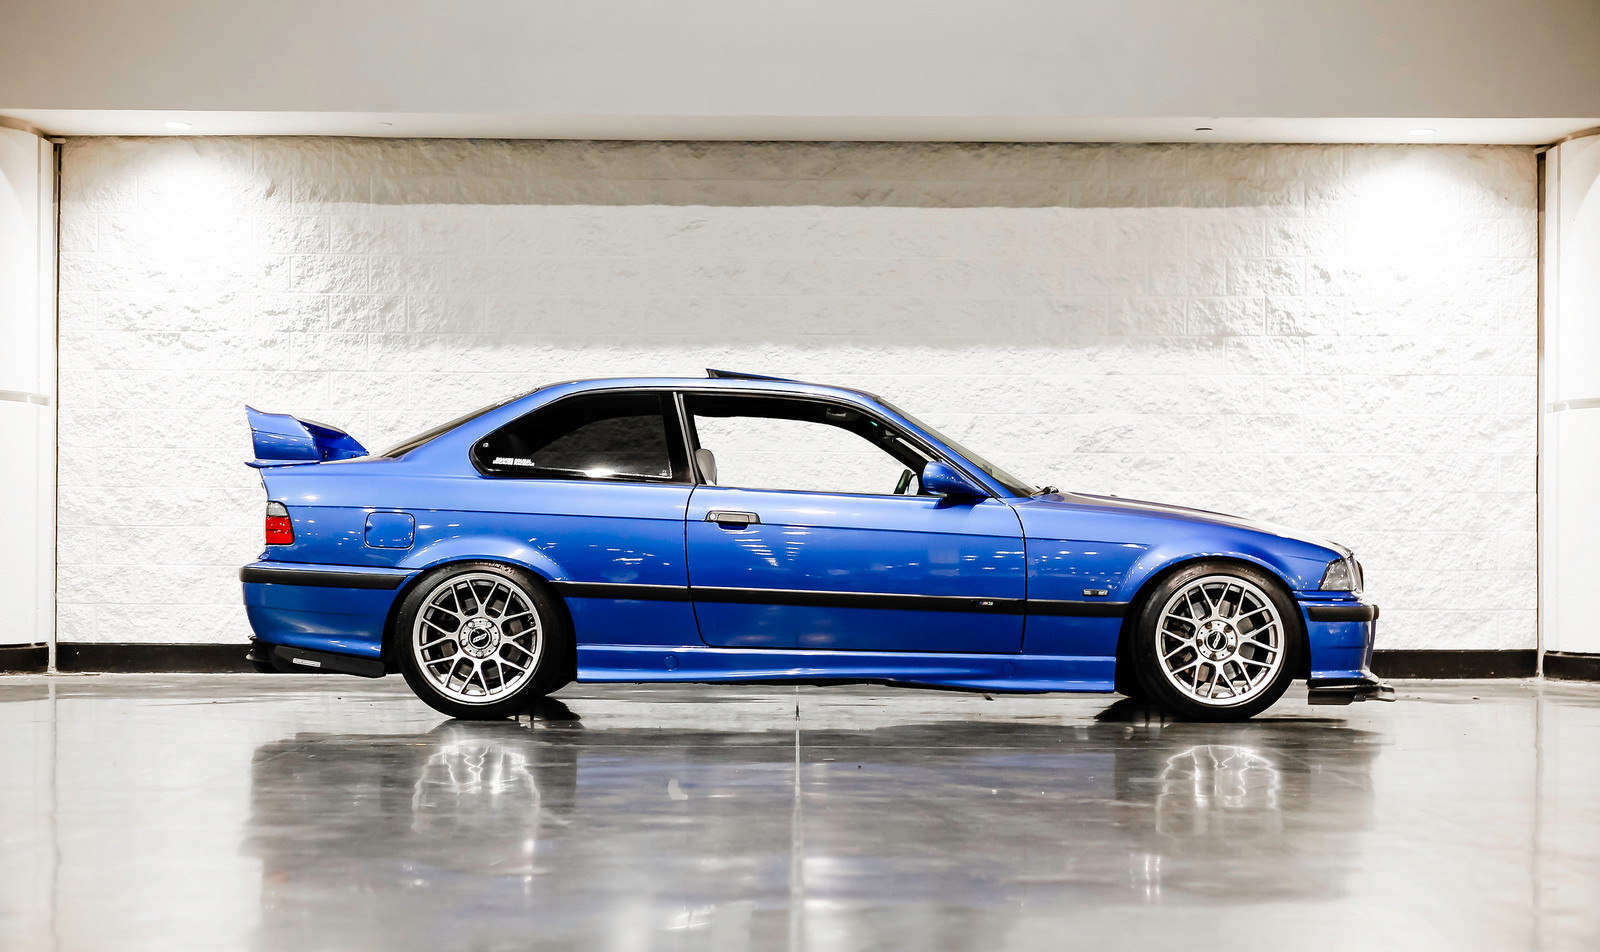 apex BMW e36 arc8 wheels fitment